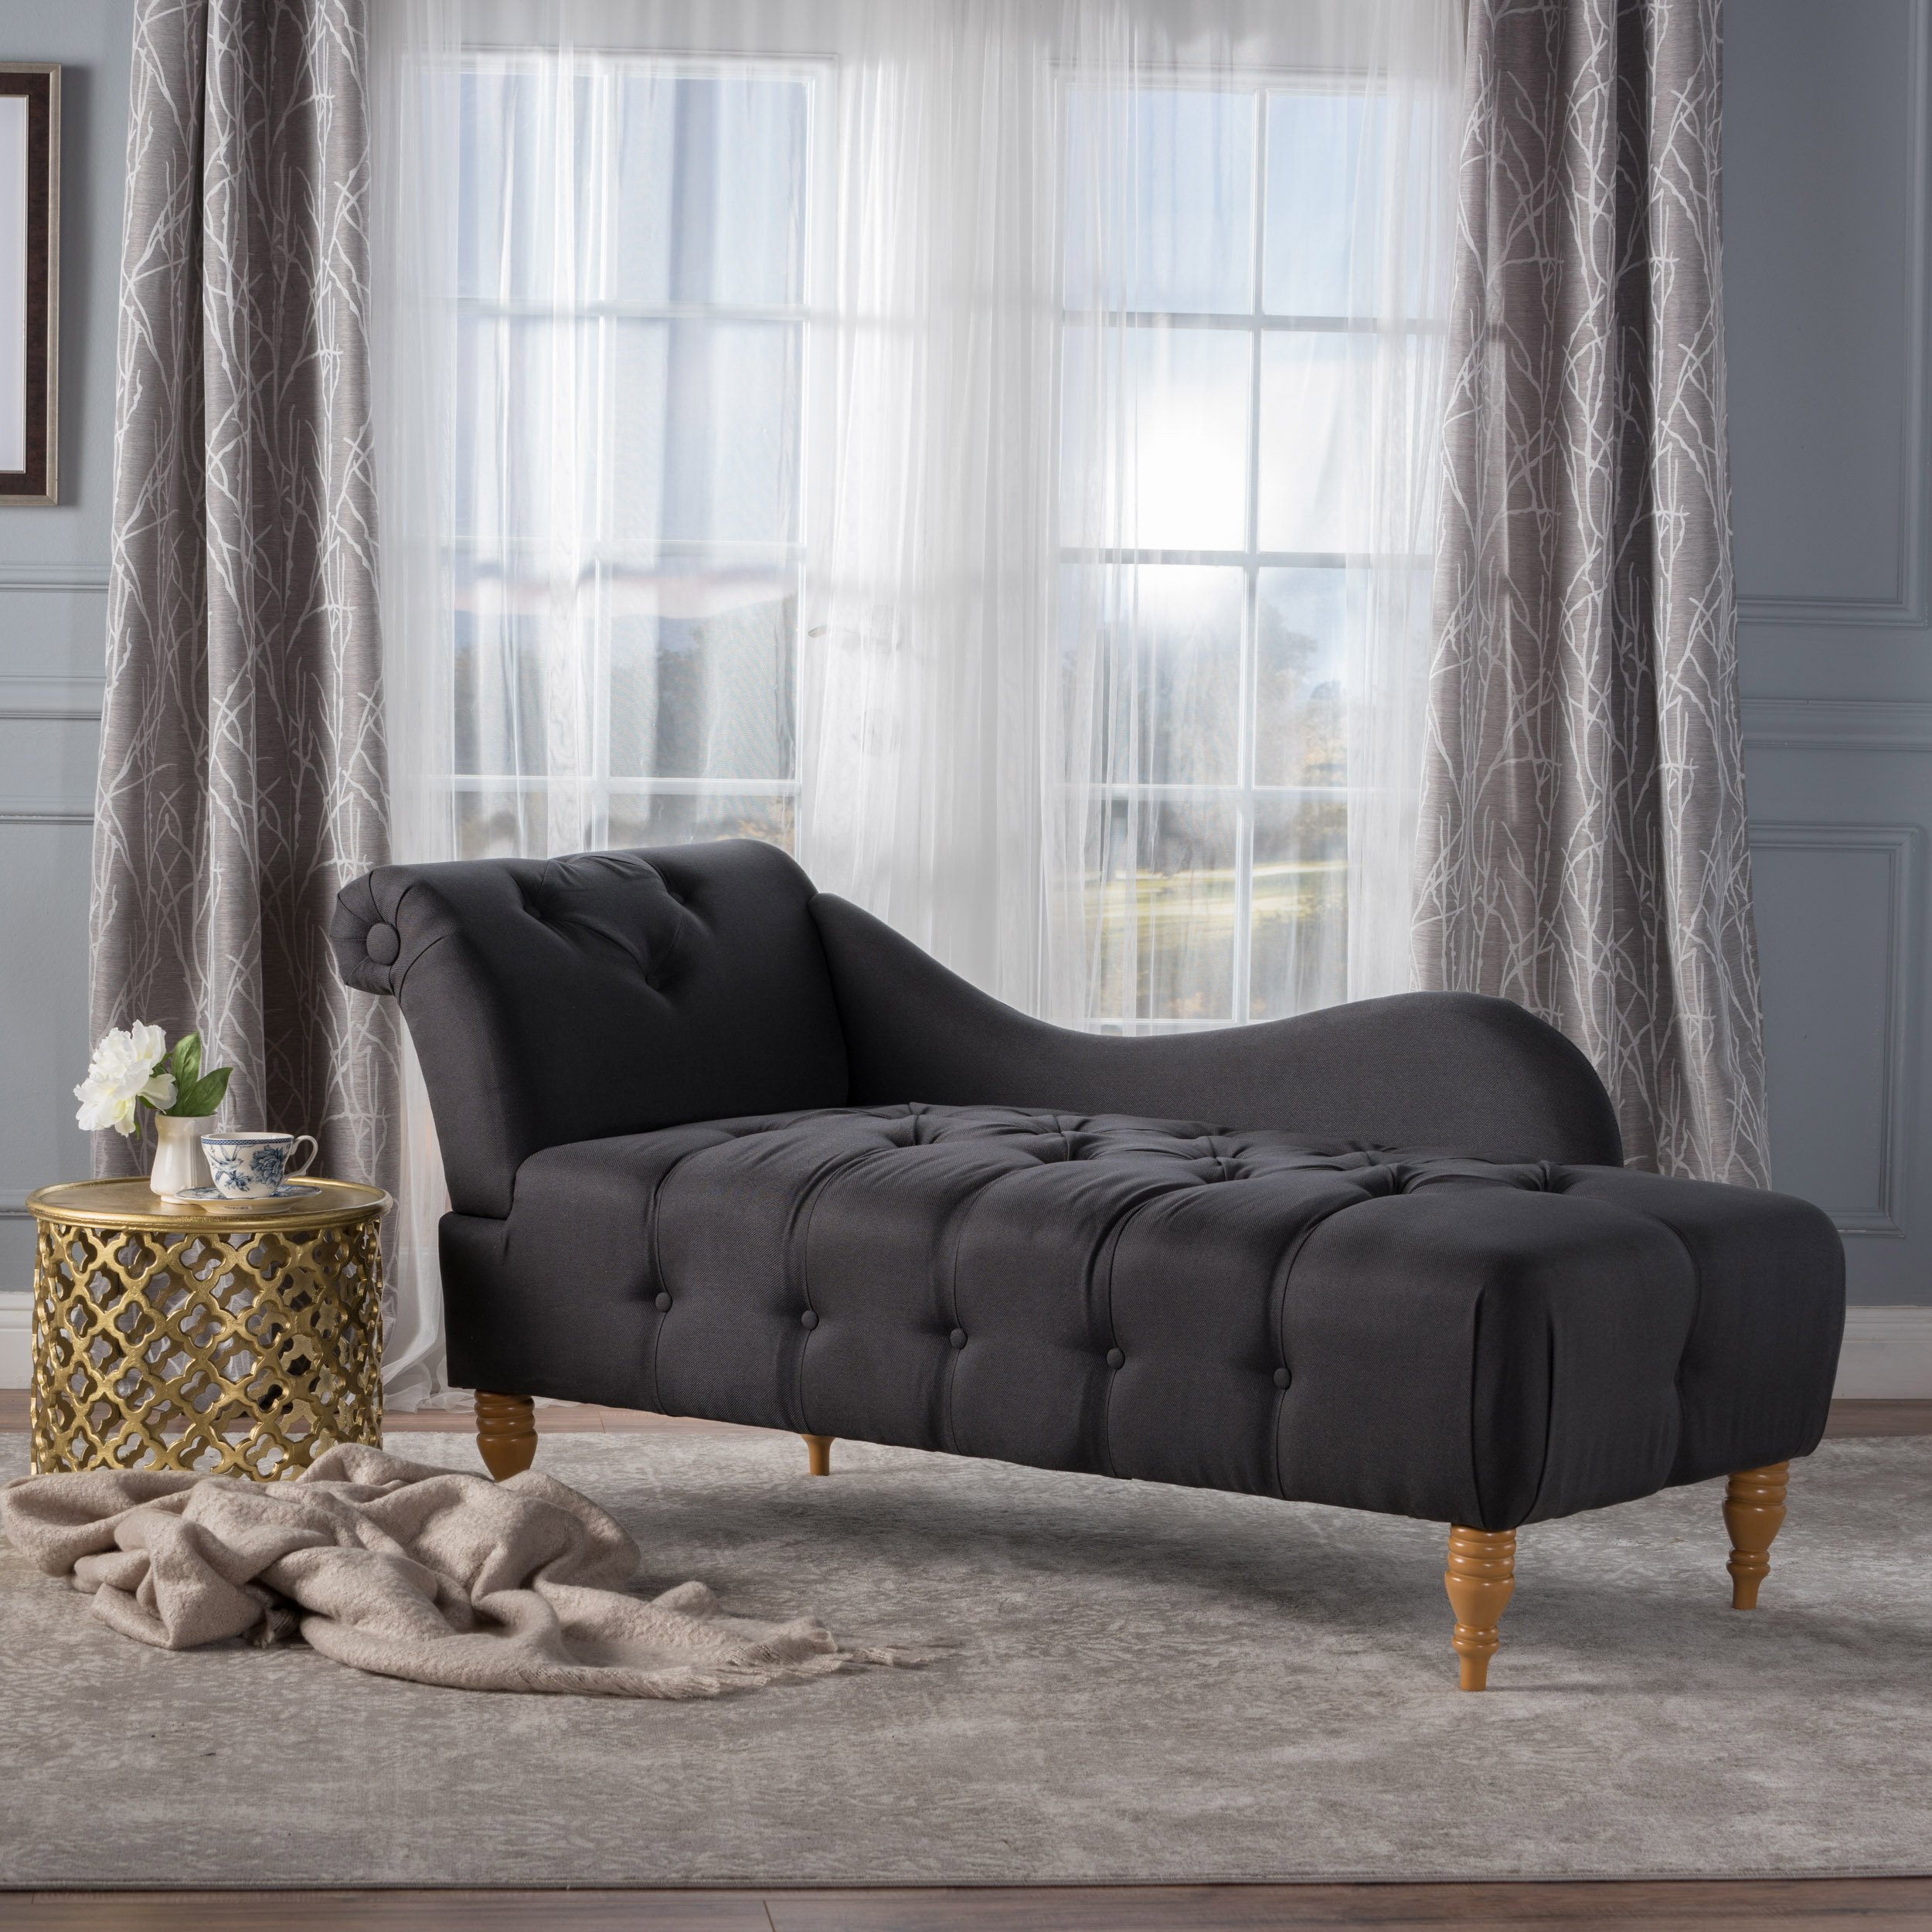 Christopher Knight Home Antonya Plush Tufted Traditional Chaise Lounge (Dark Charcoal Fabric) by Christopher Knight Home